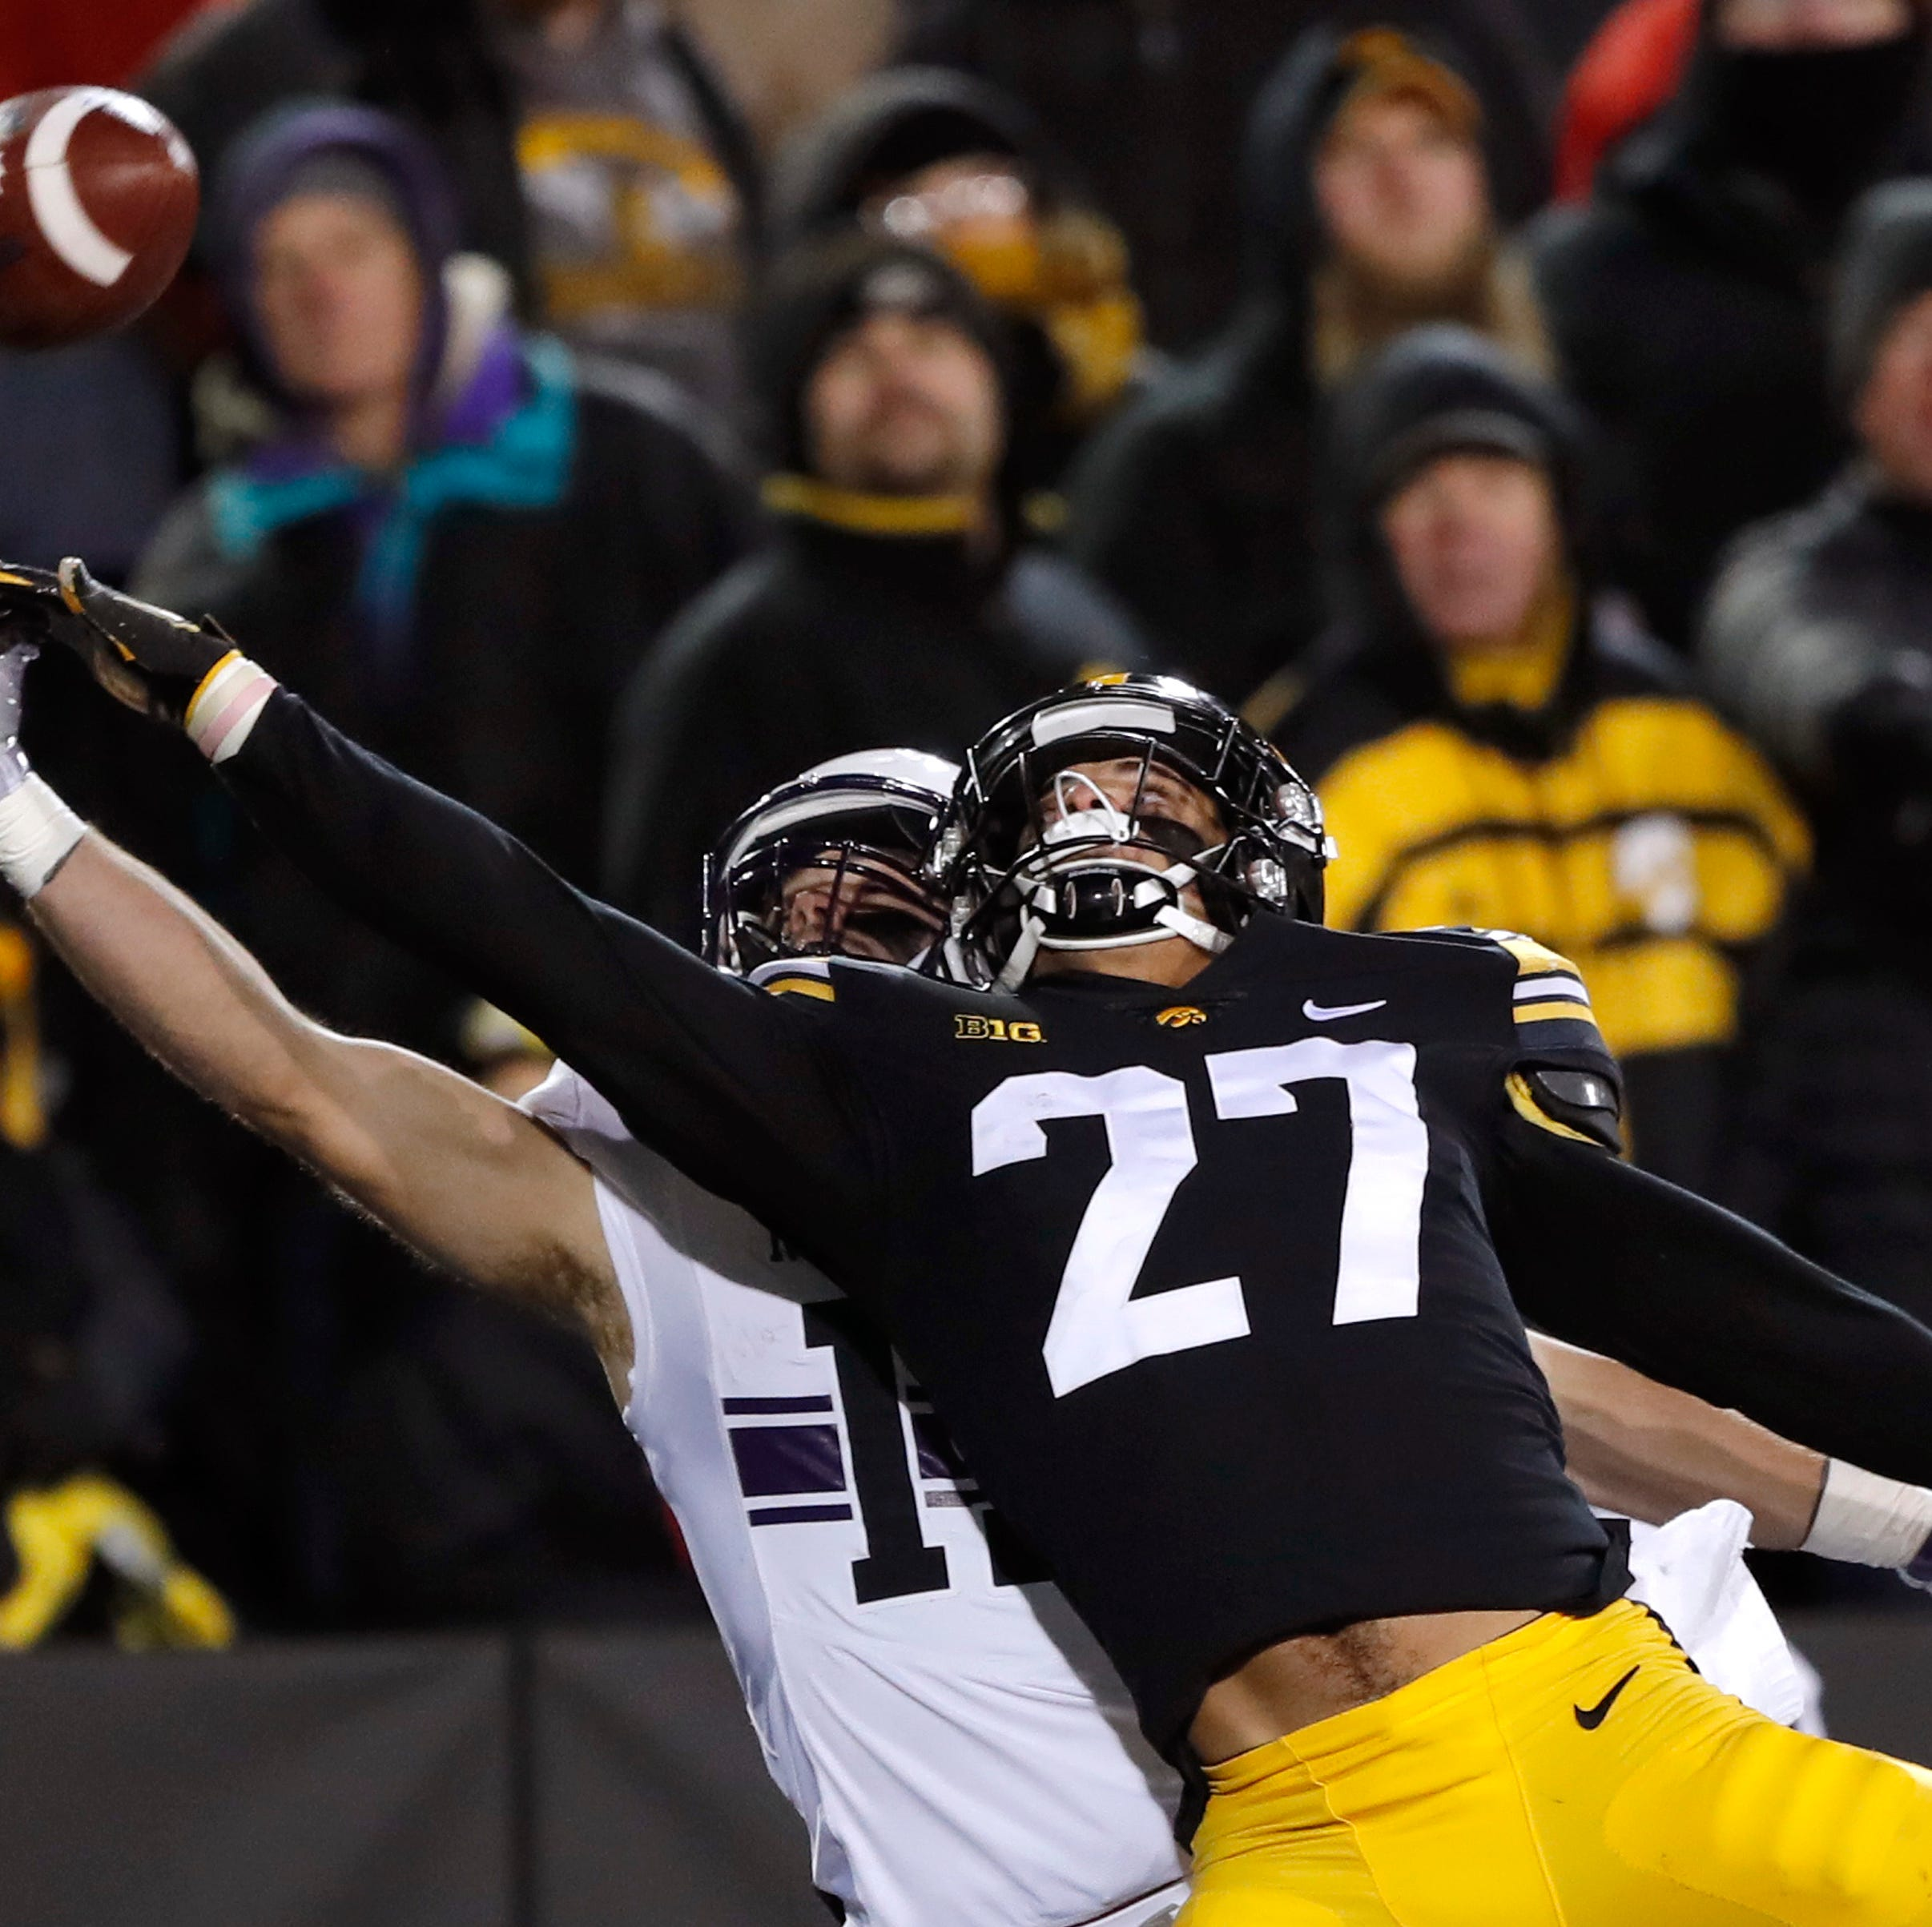 Titans move up to select Iowa defensive back Amani Hooker in fourth round